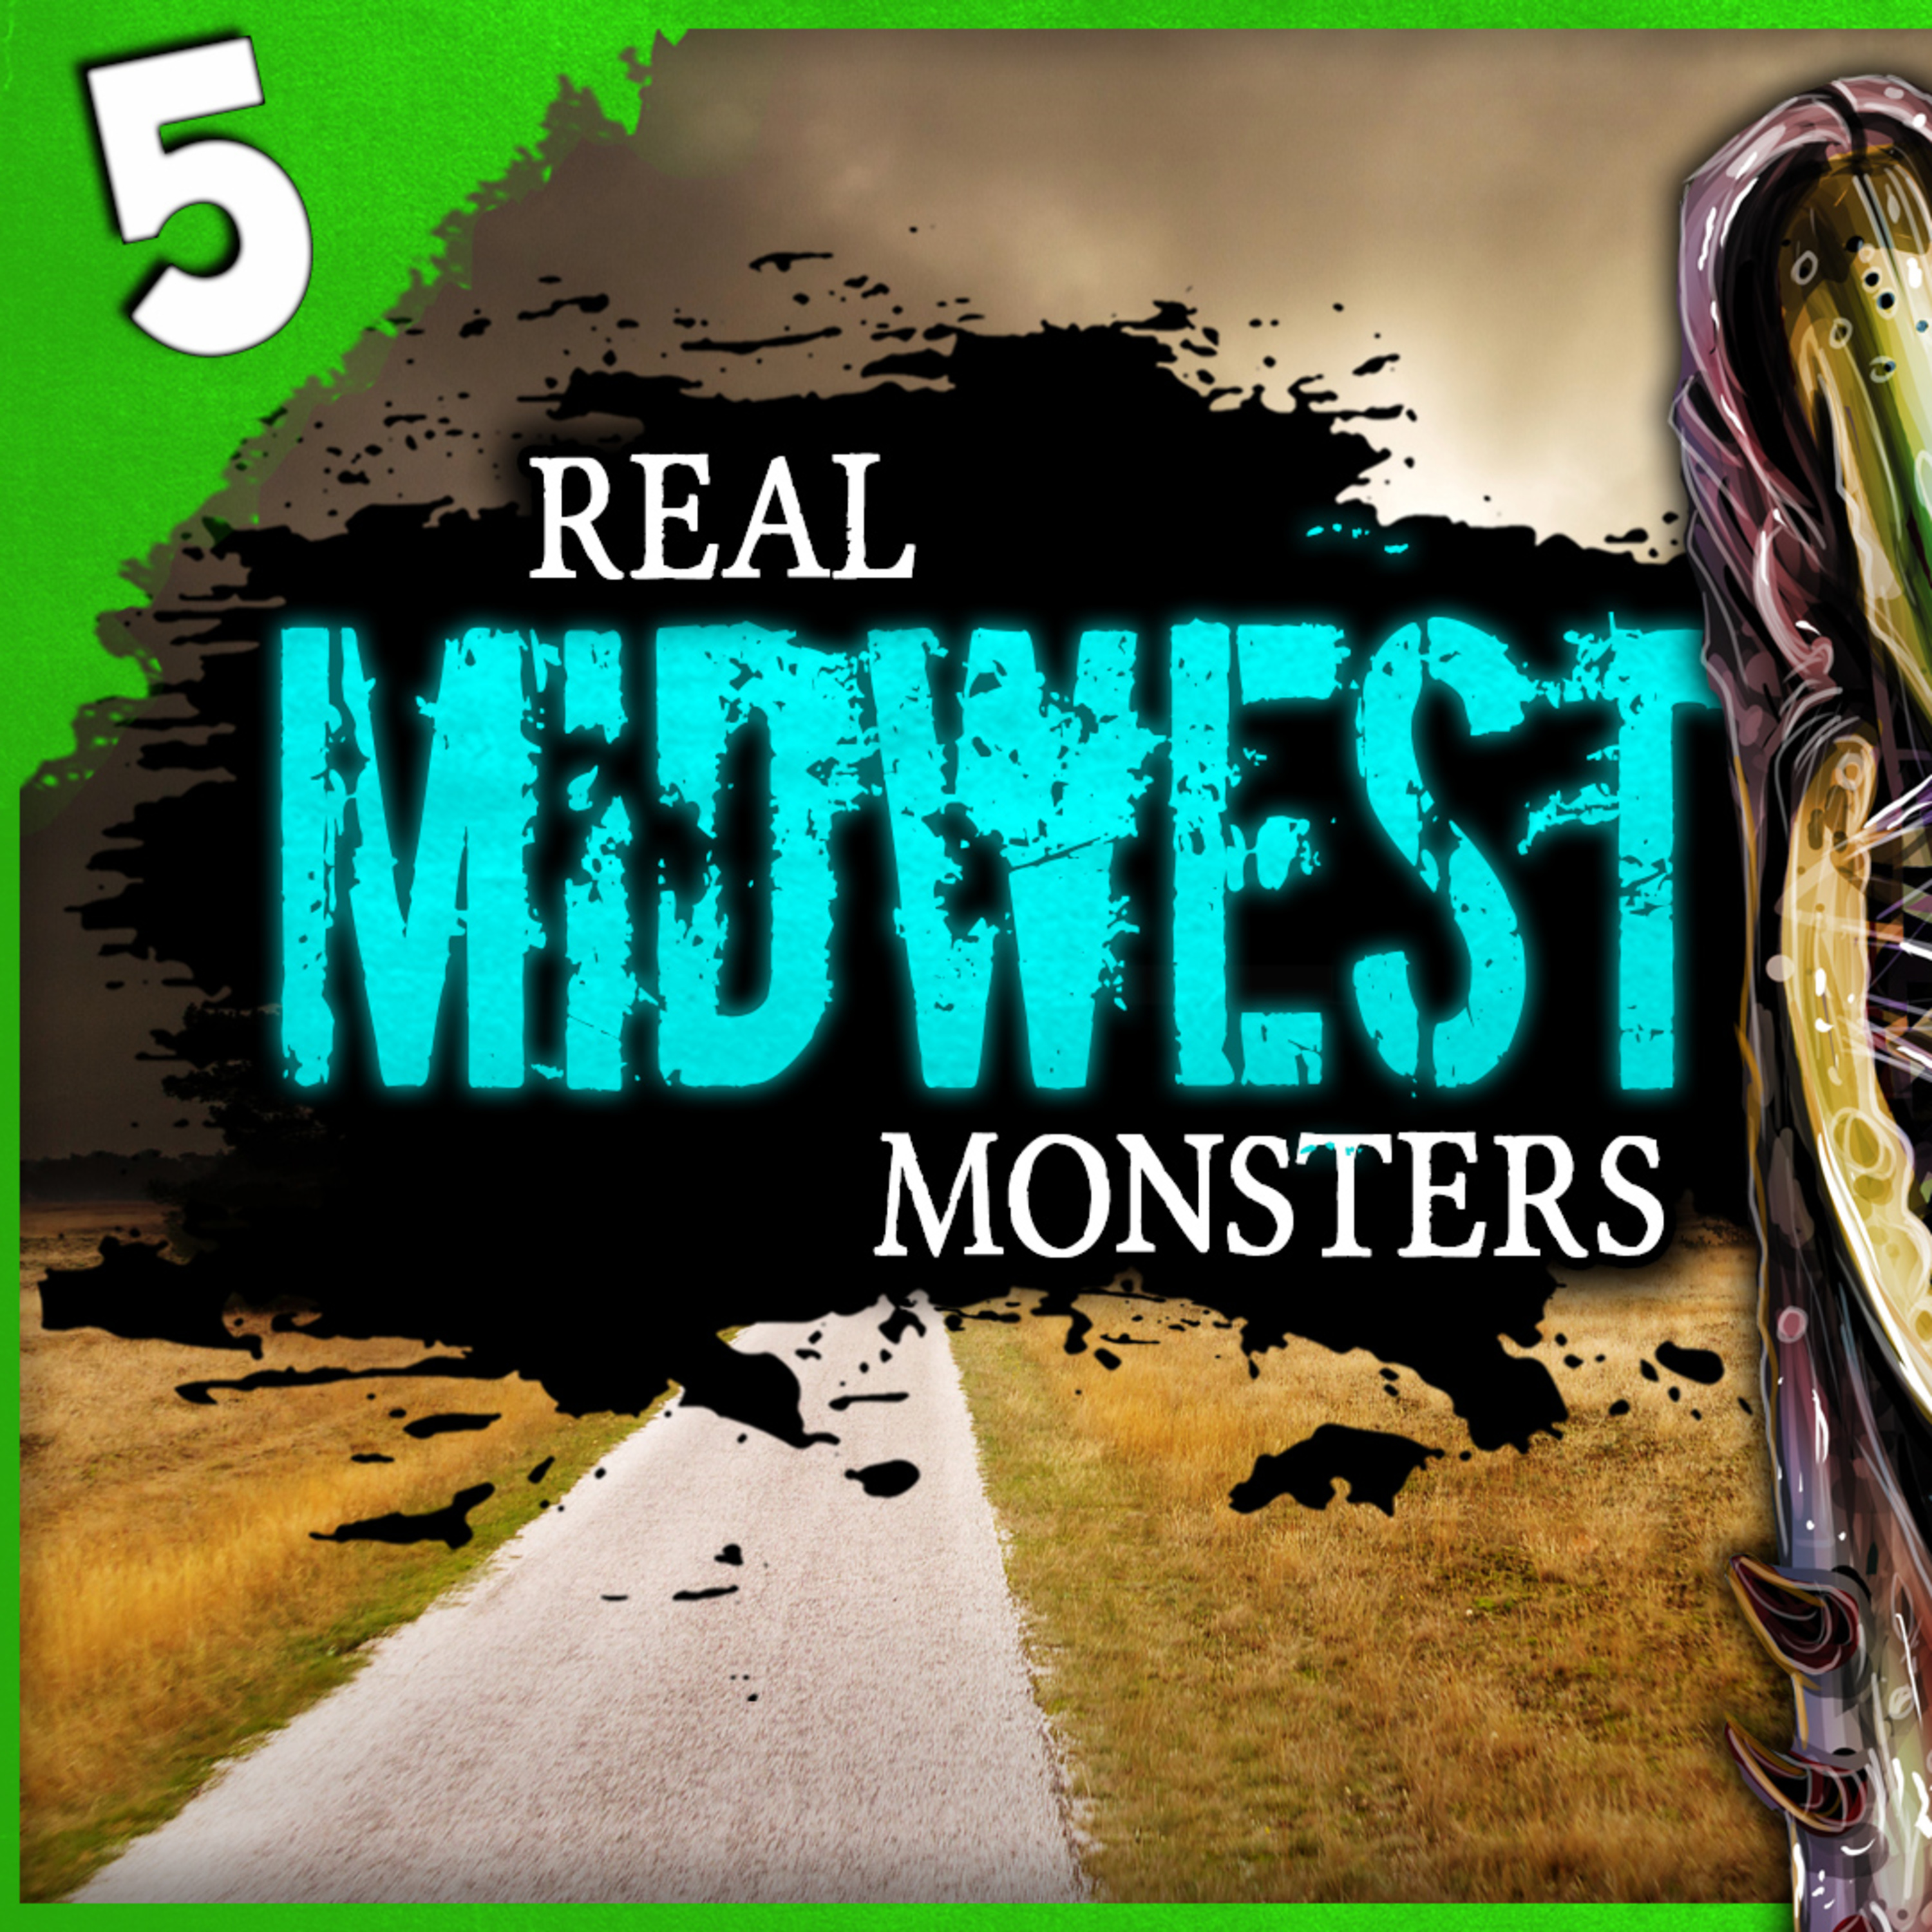 Episode 520 - 5 REAL Monsters Seen In The Midwest United States